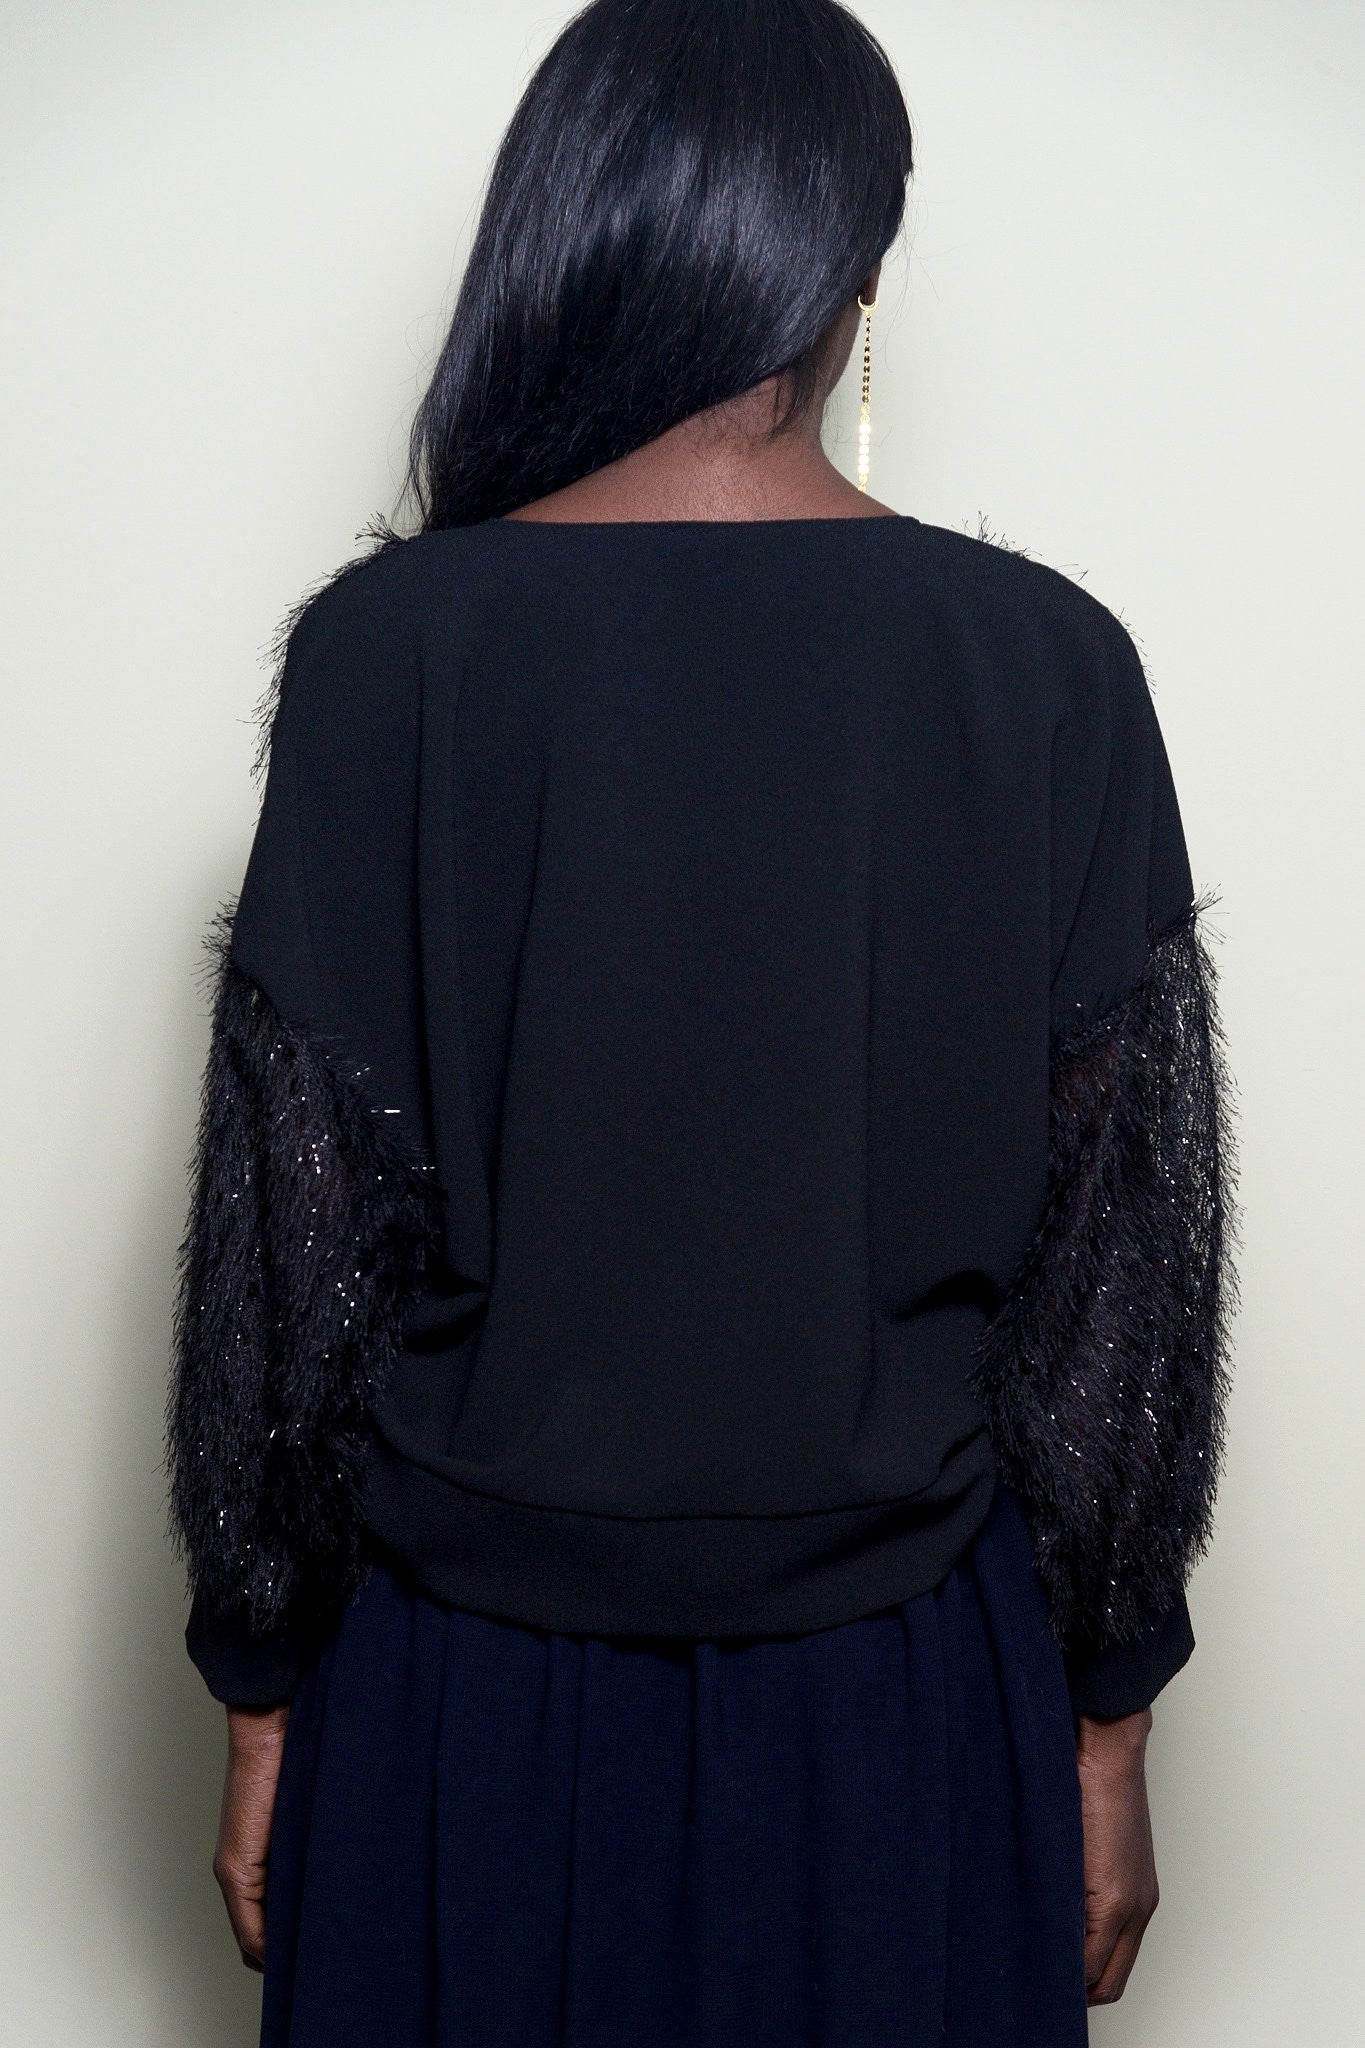 Black Oversized Top With Fringe Sleeves by Minkie London on OOSTOR.com